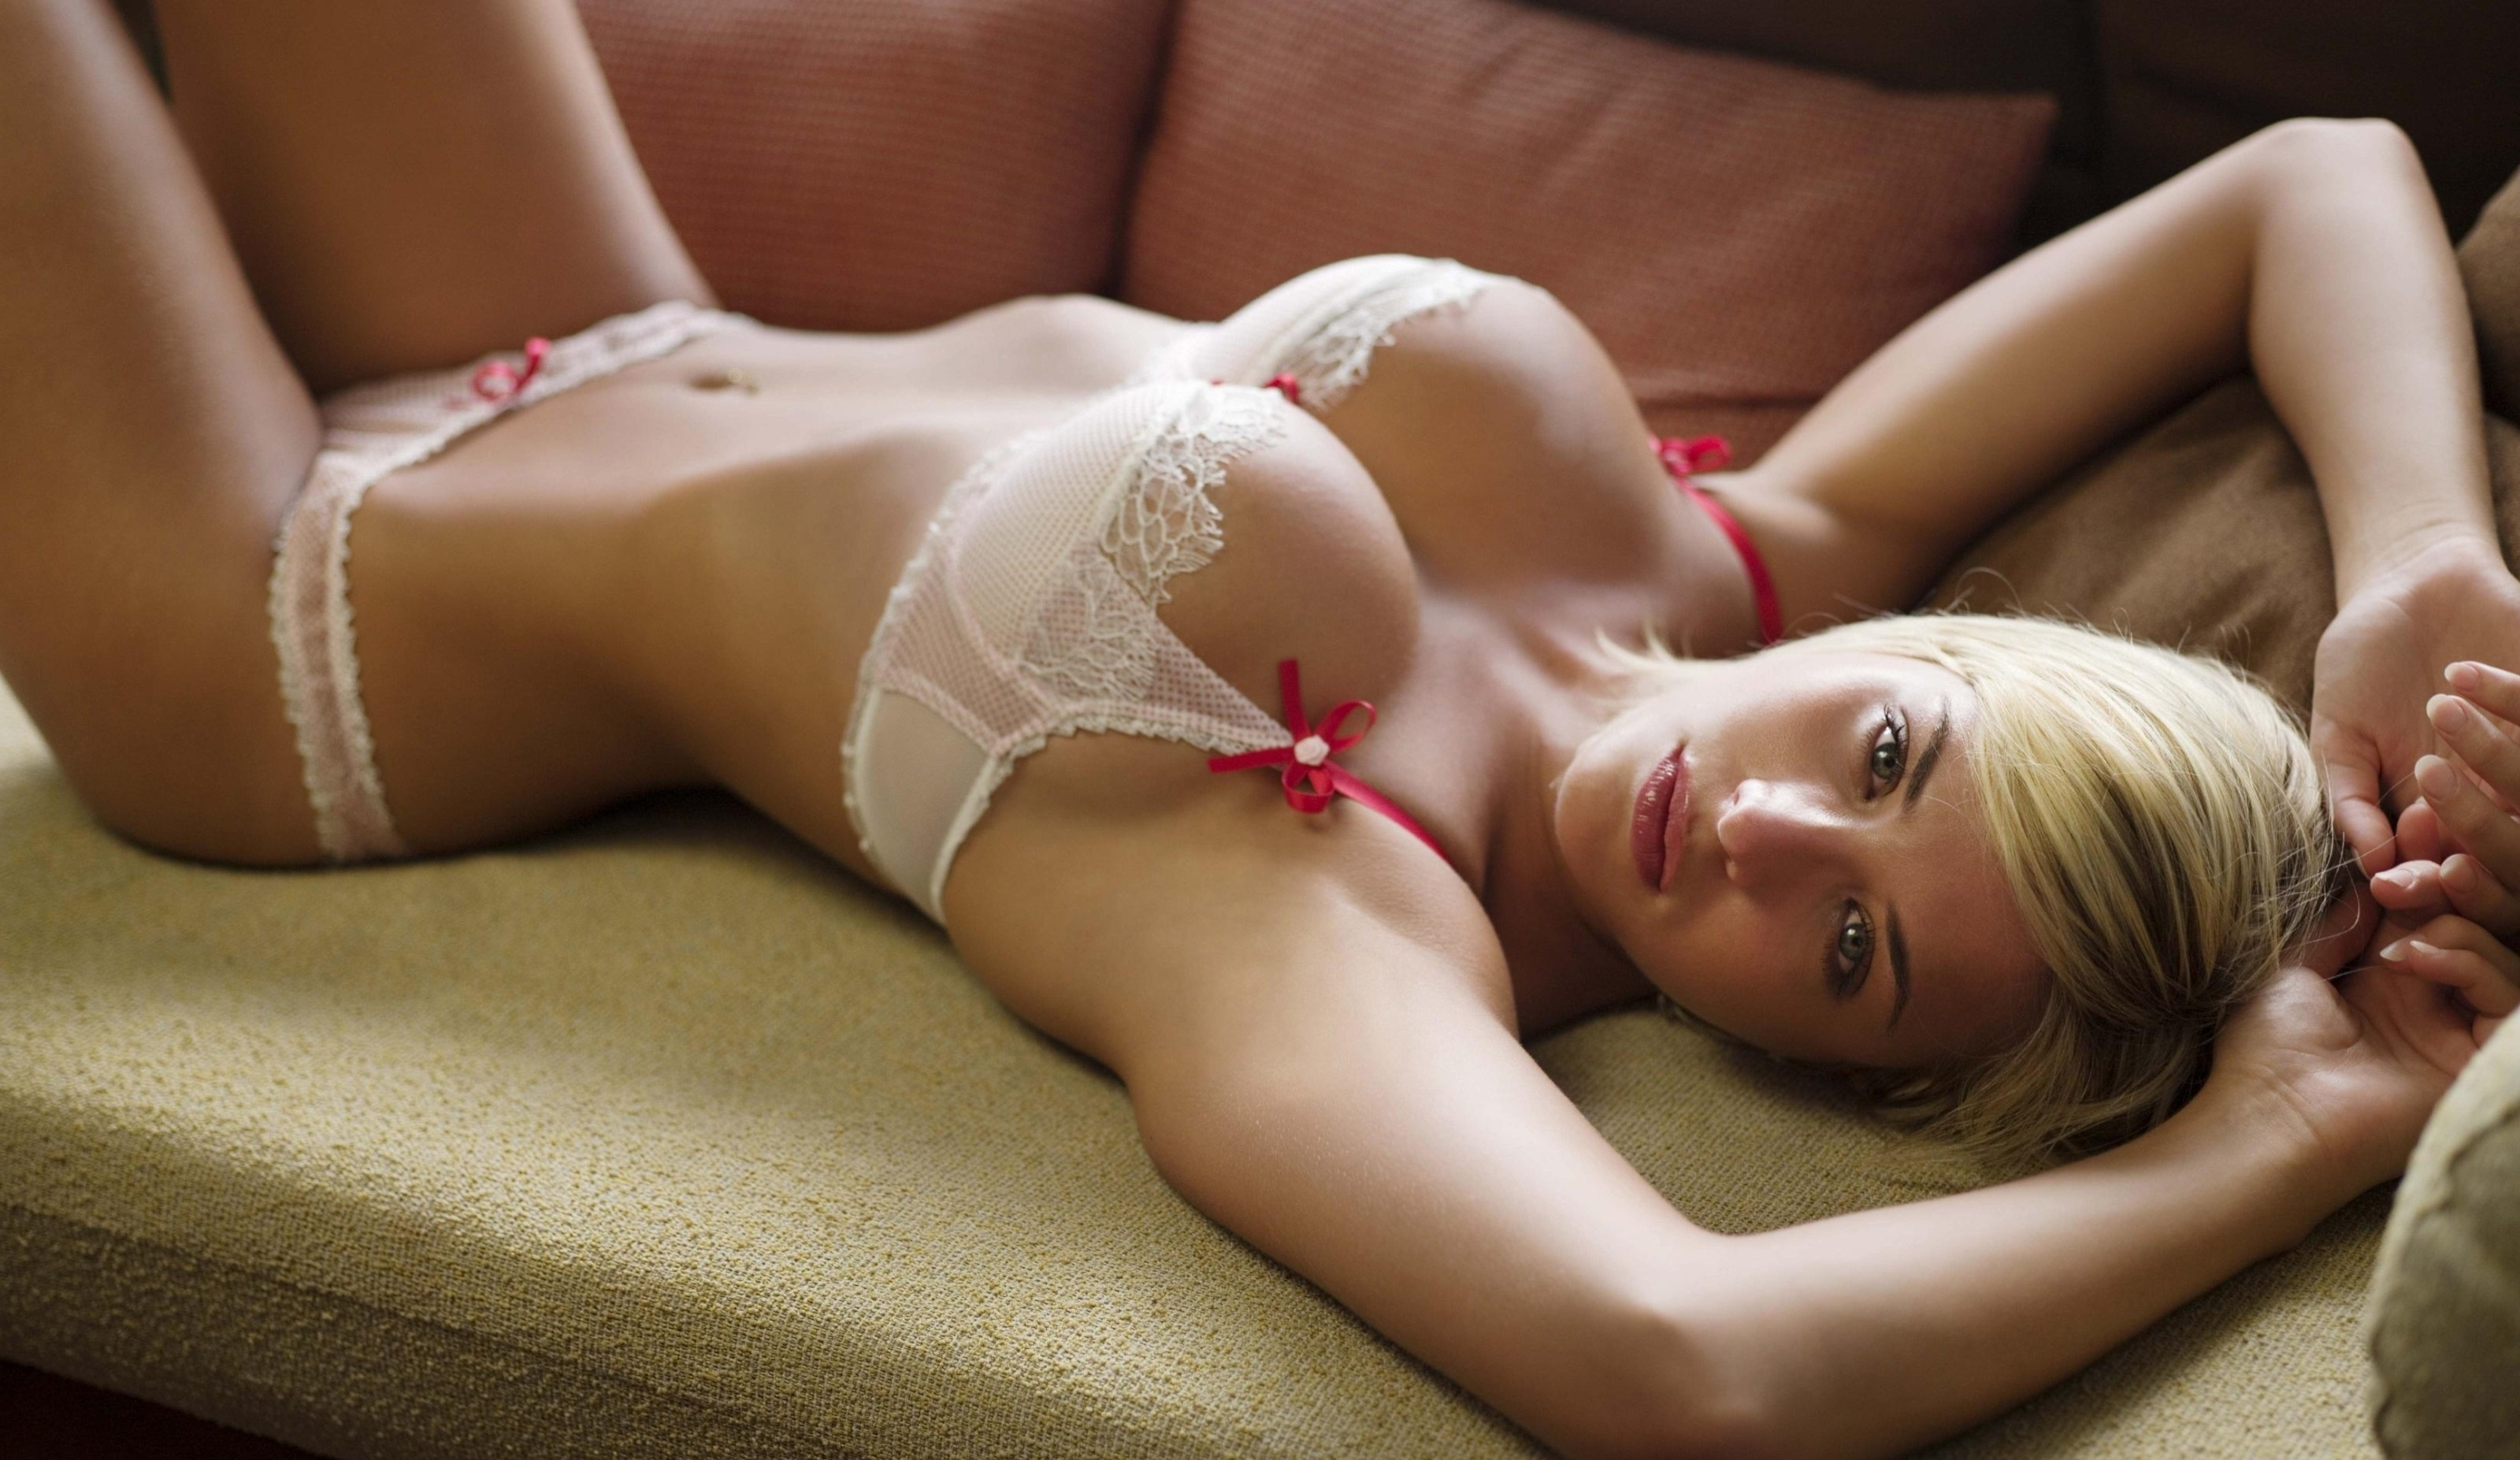 Cute blonde chick Dakota James removes shorts and lingerie to pose nude № 639460 бесплатно